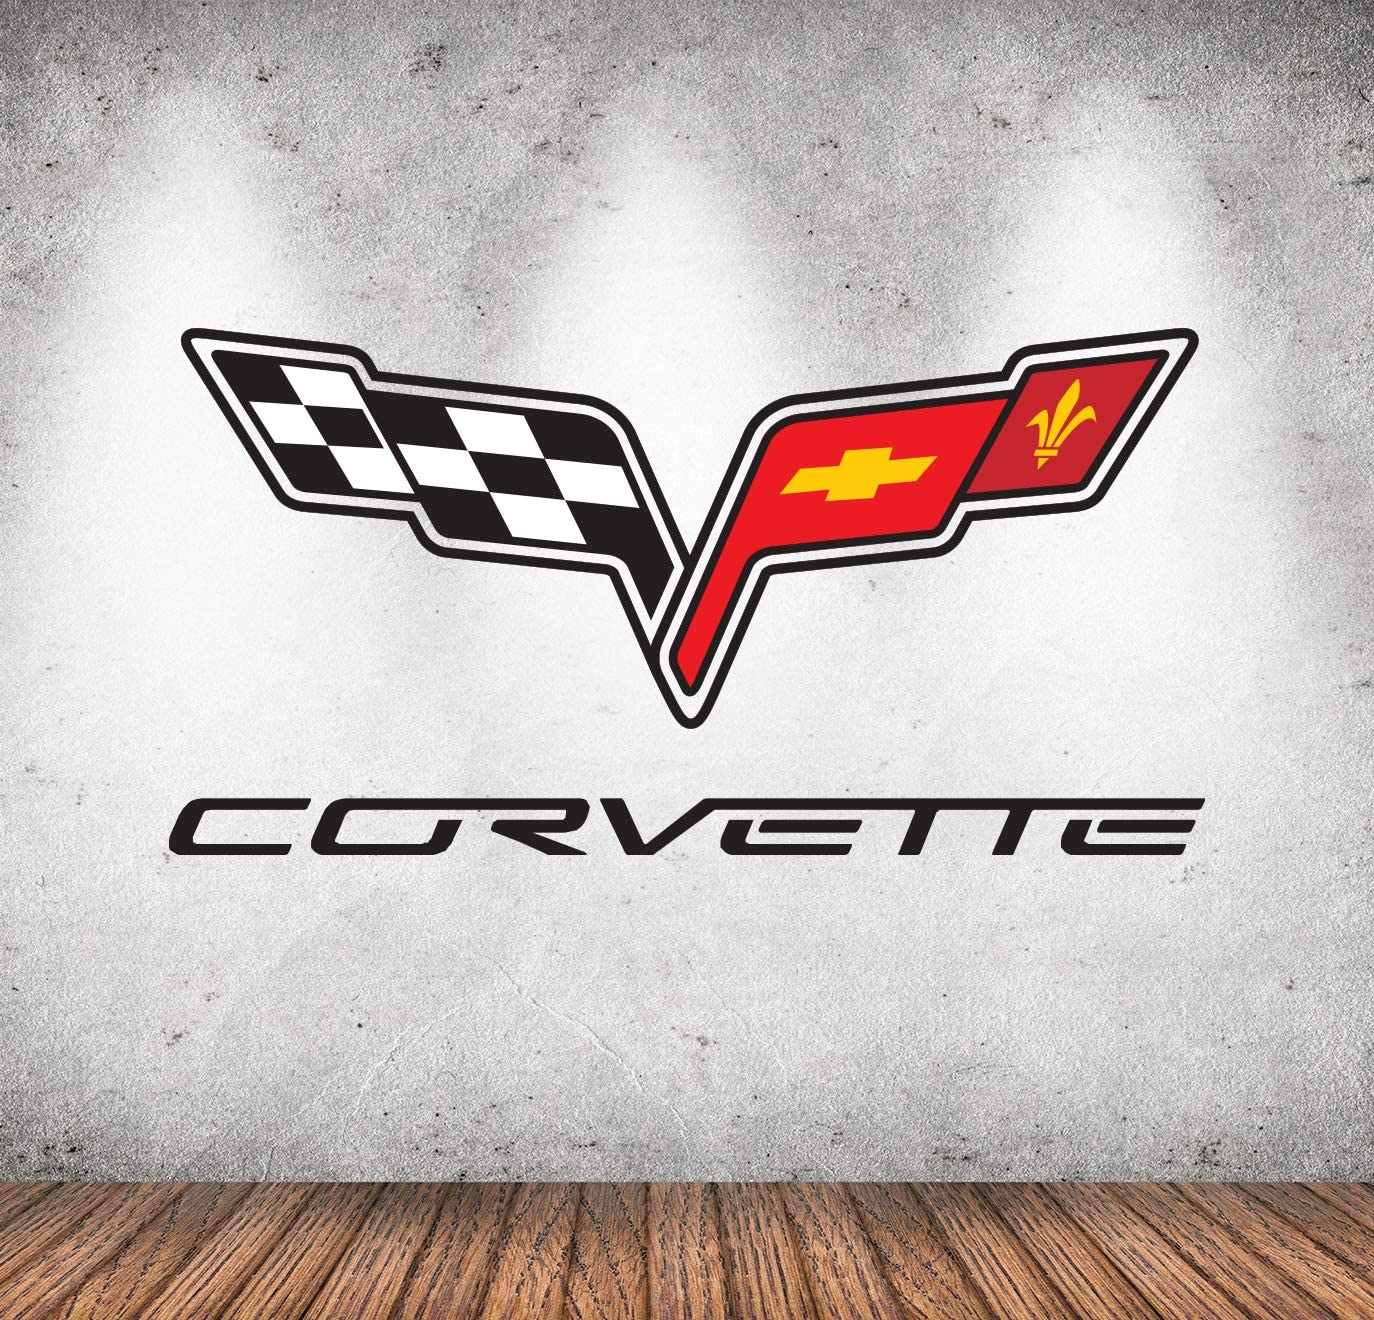 Racing Car Symbol Wall Art Corvette Wall Decals Classic Emblem C6 Custom Fan Cars Room Garage Wall Decor Removable Vinyl Wall Stickers Gift